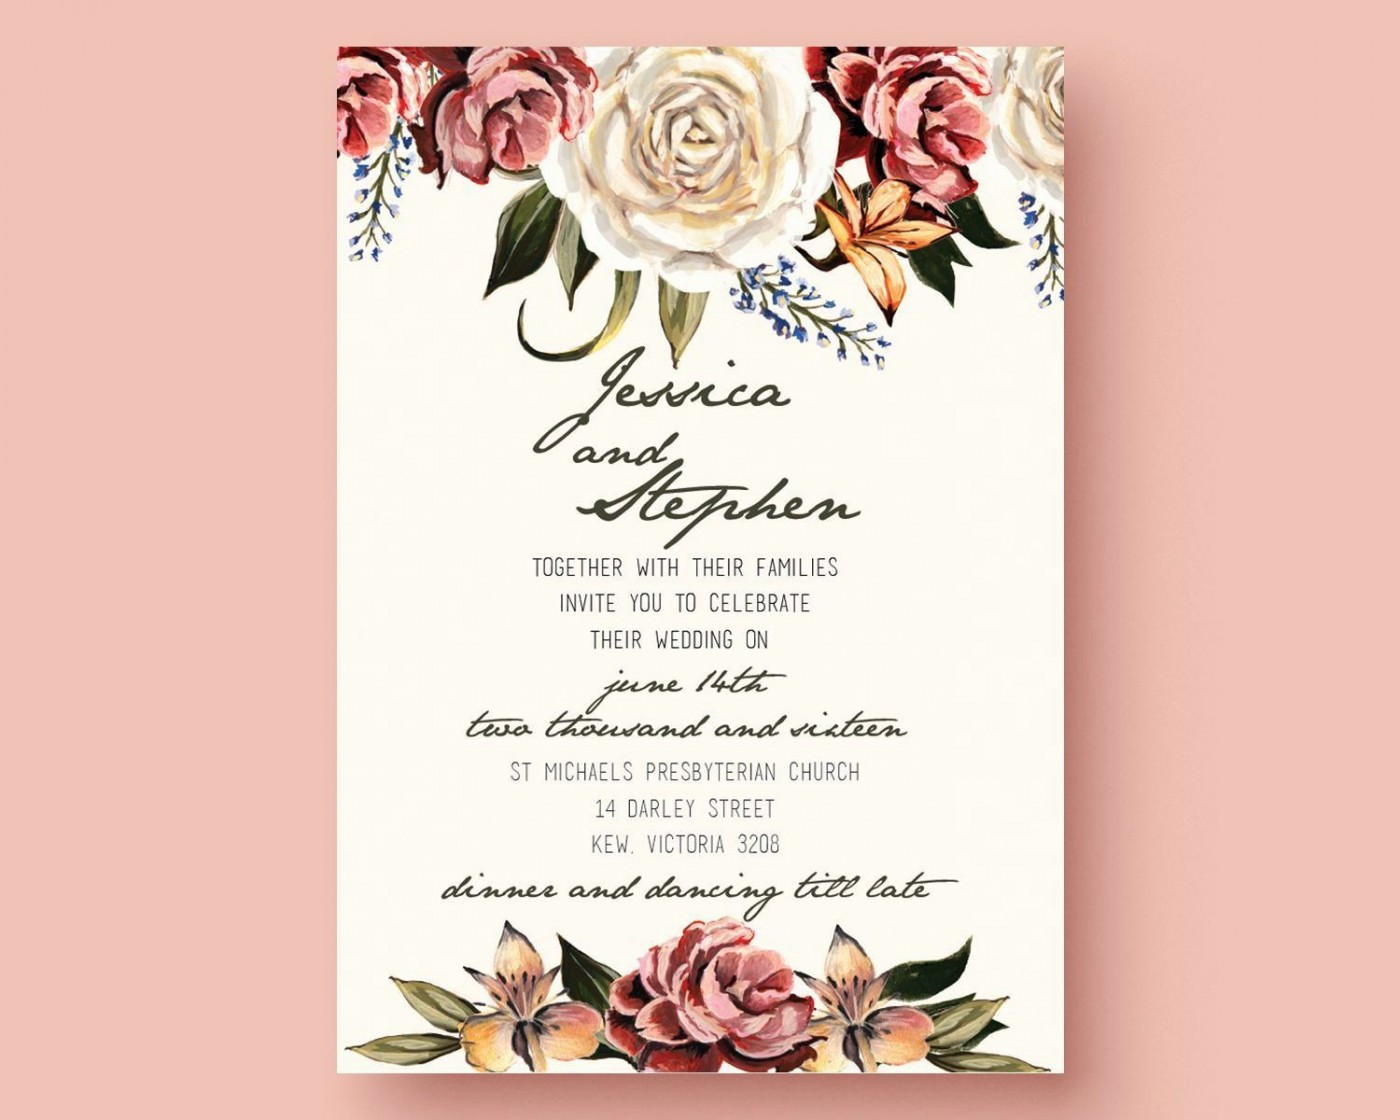 001 Unique Download Free Wedding Invitation Card Template Inspiration  Marriage Format Psd1400